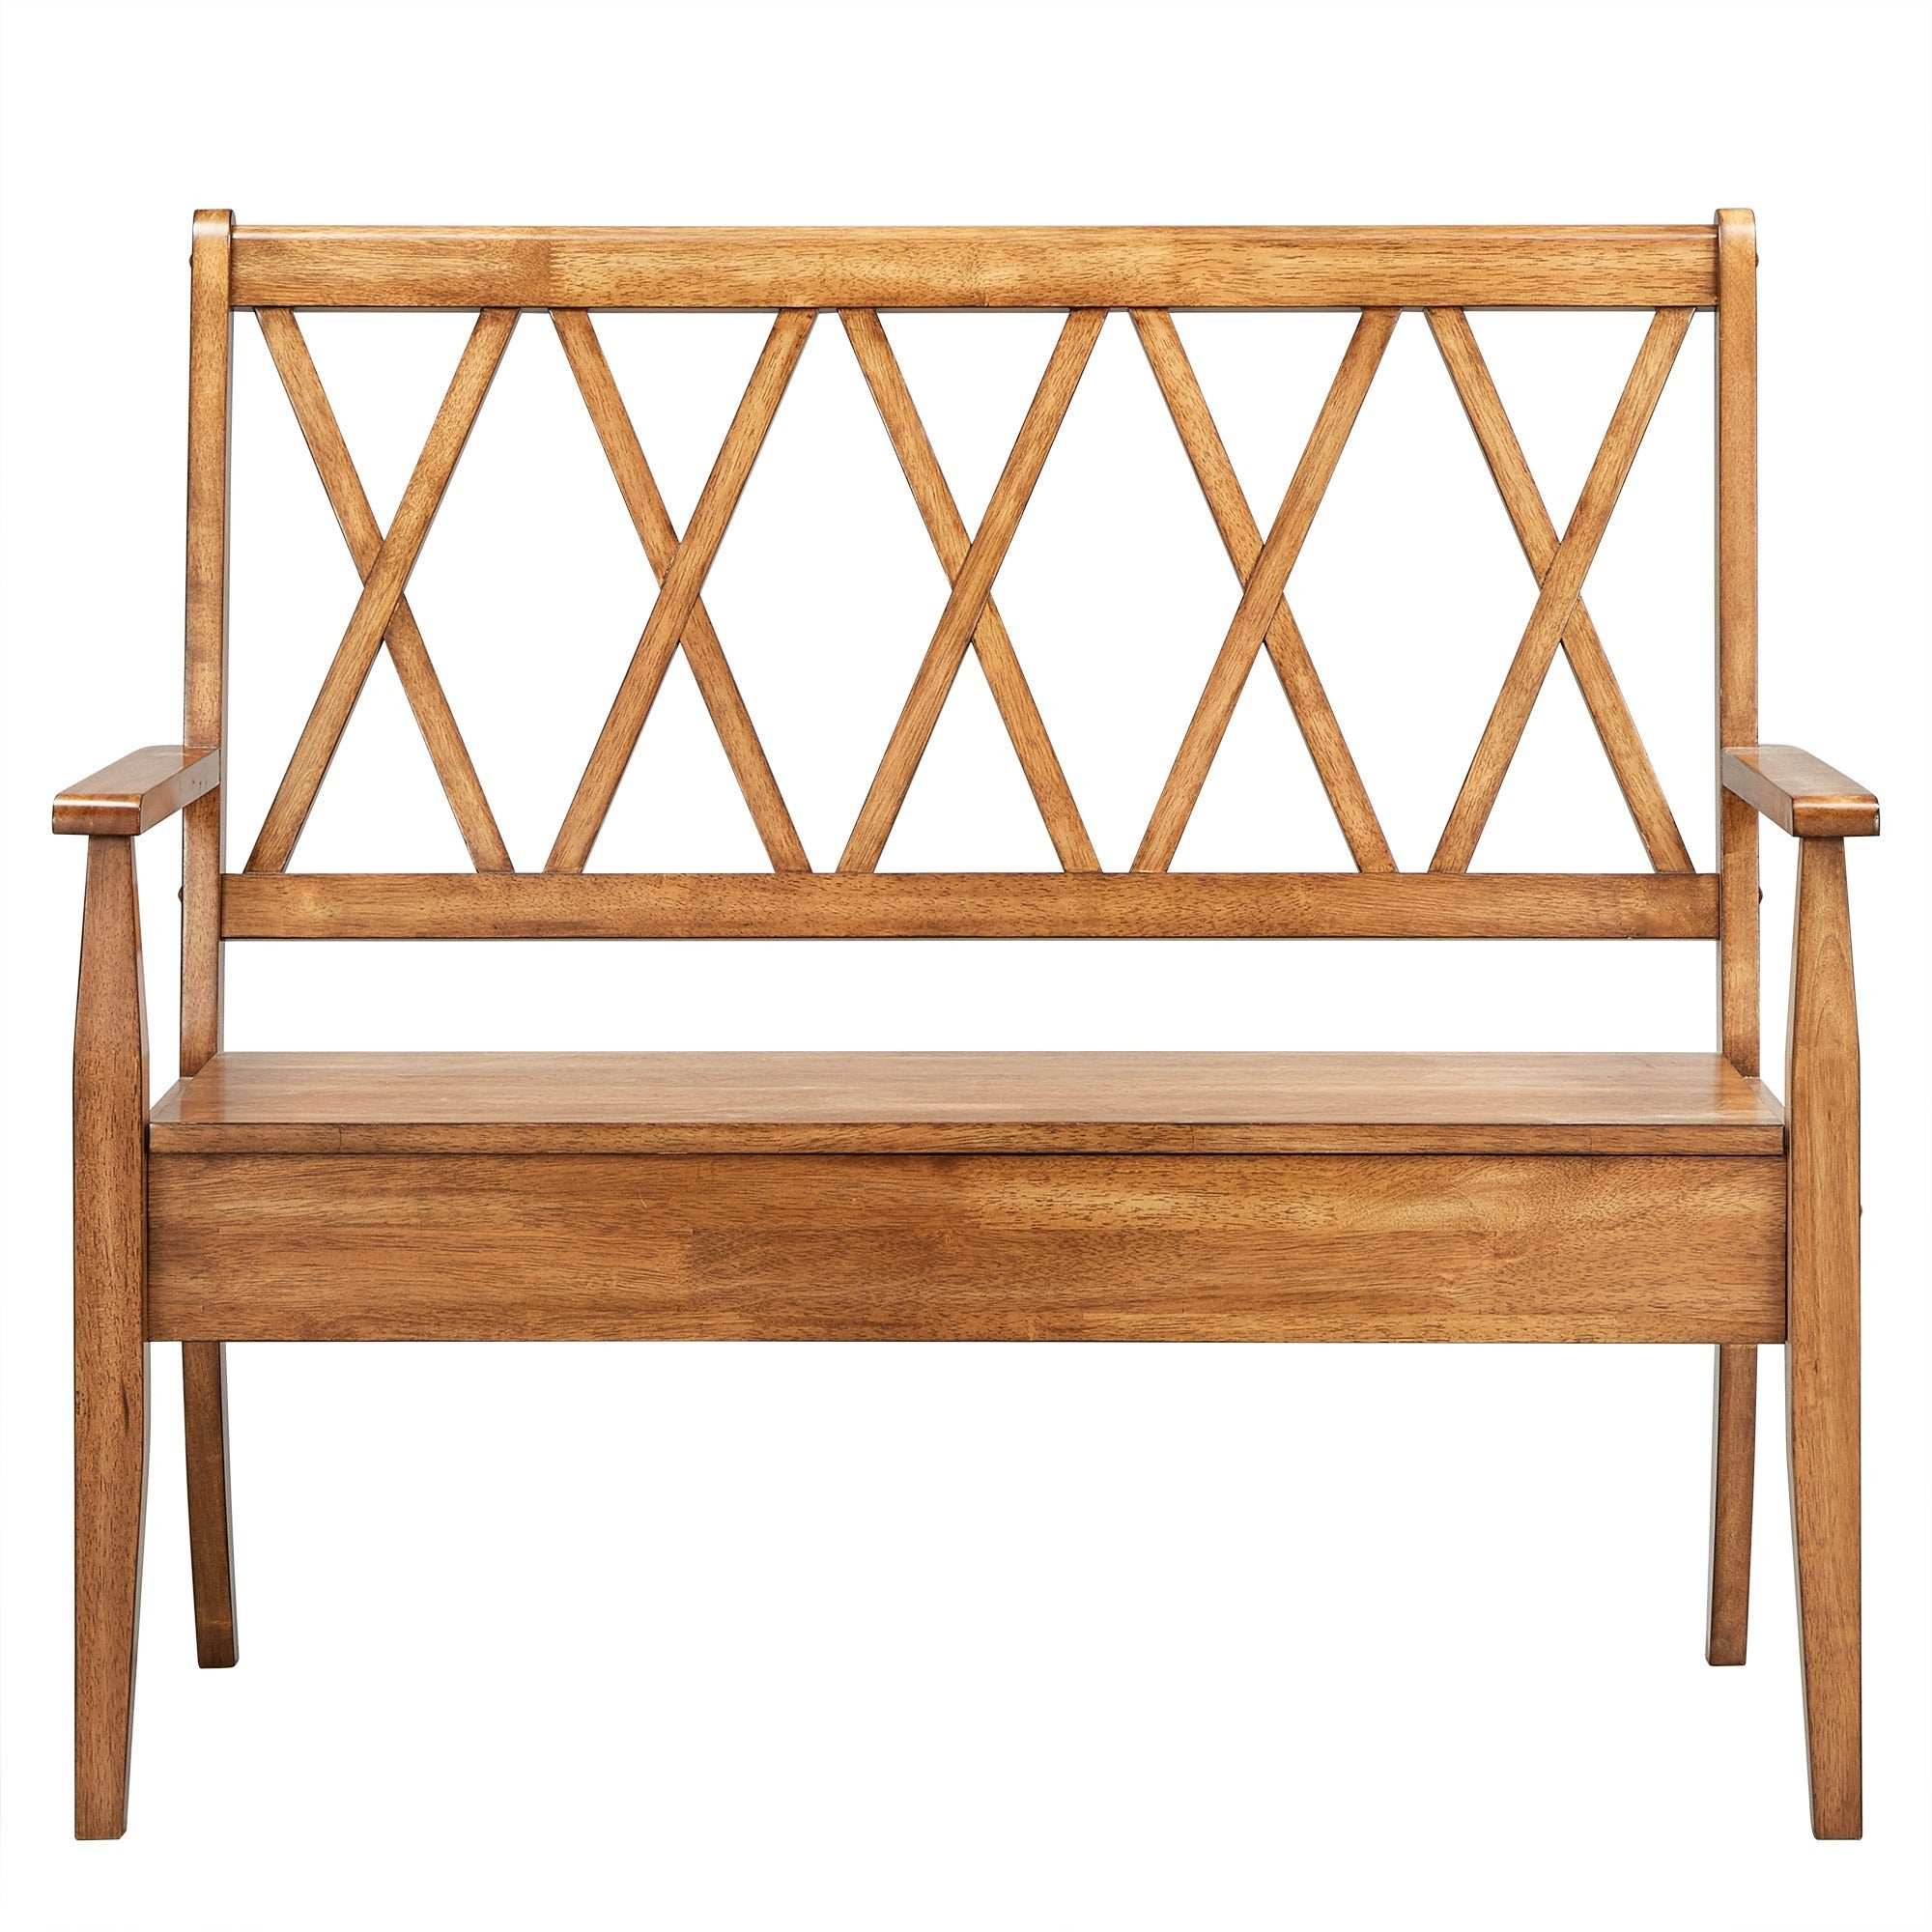 Eleanor X Back Wood Storage Bench by iNSPIRE Q Classic - Free Shipping  Today - Overstock.com - 20163735